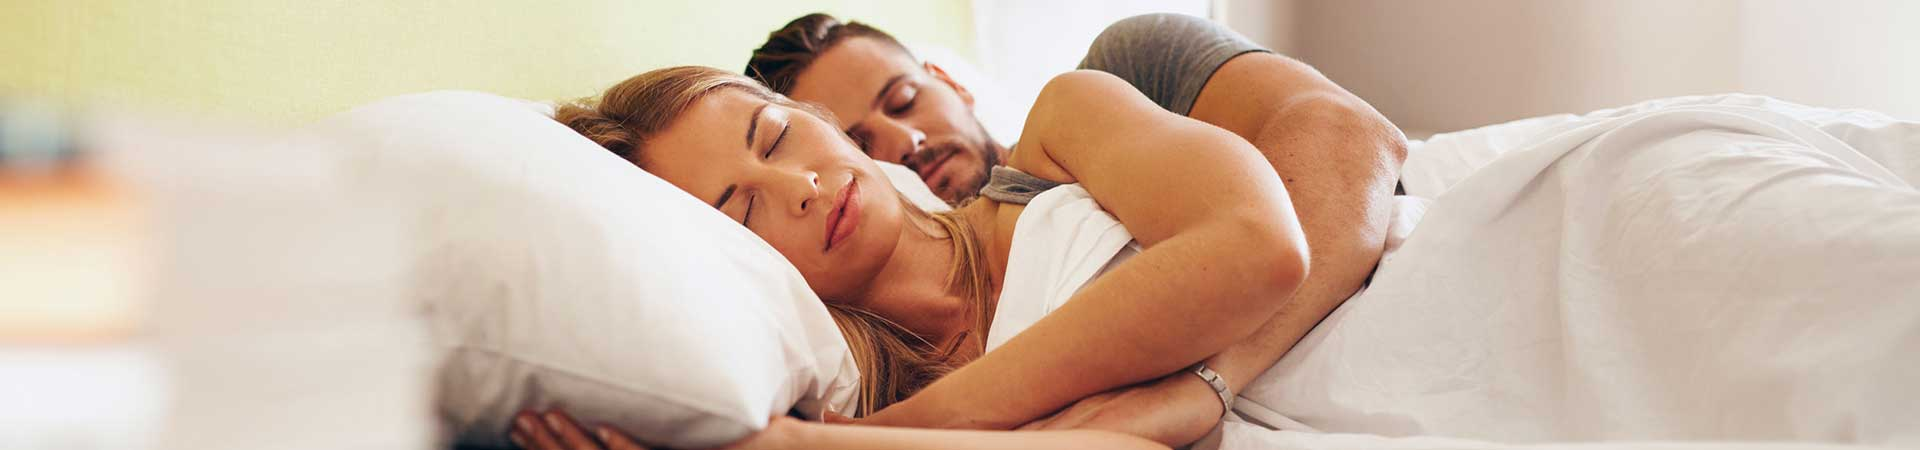 Man and woman sleeping